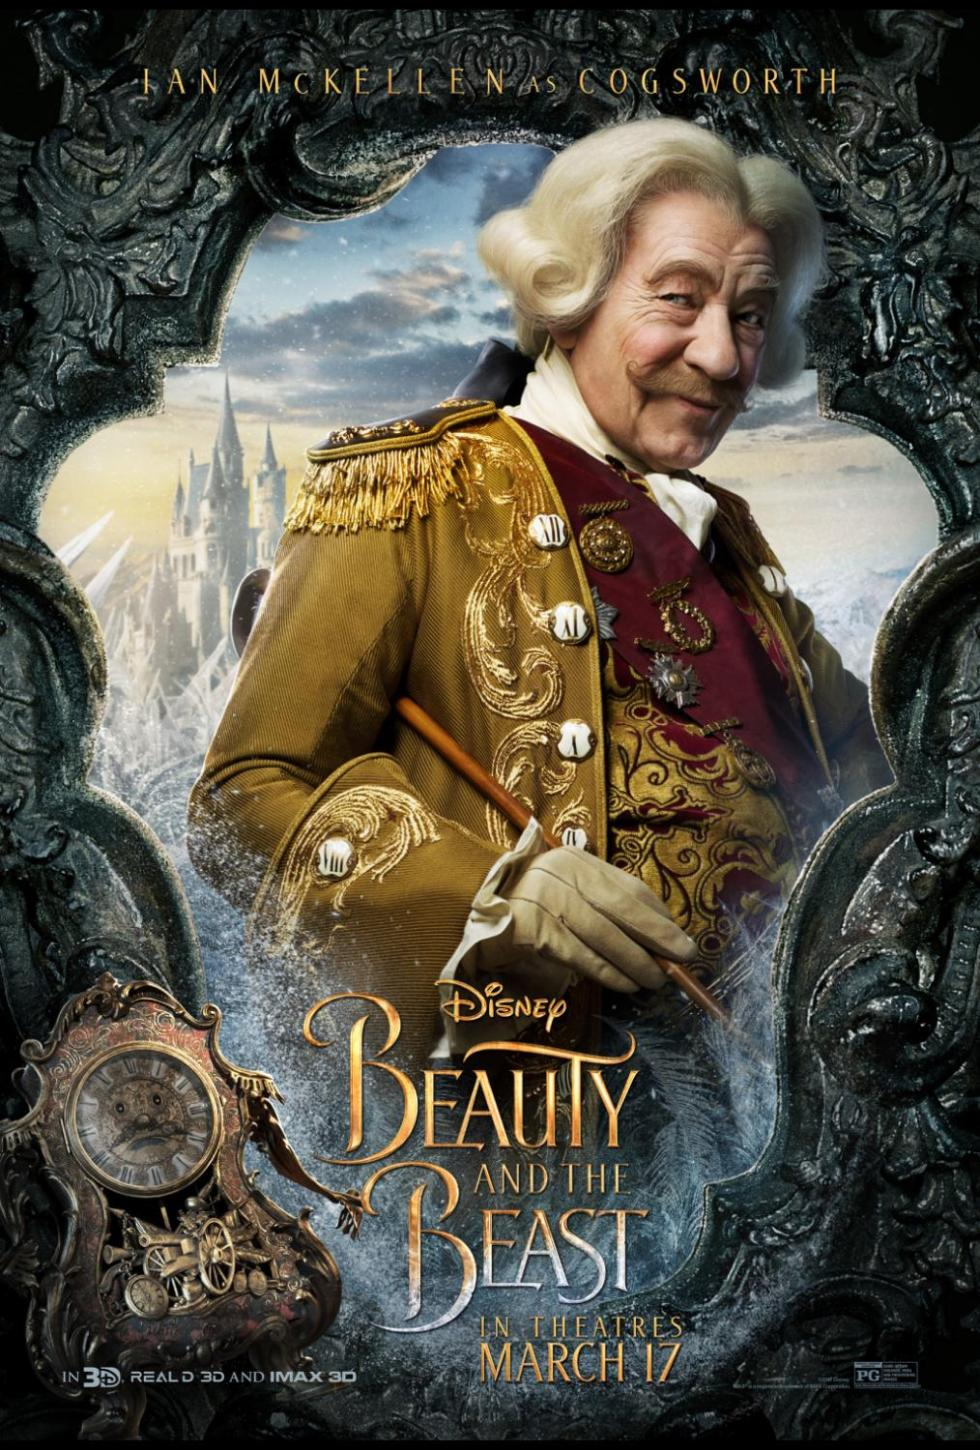 Disney's BEAUTY AND THE BEAST Character Posters #BeOurGuest